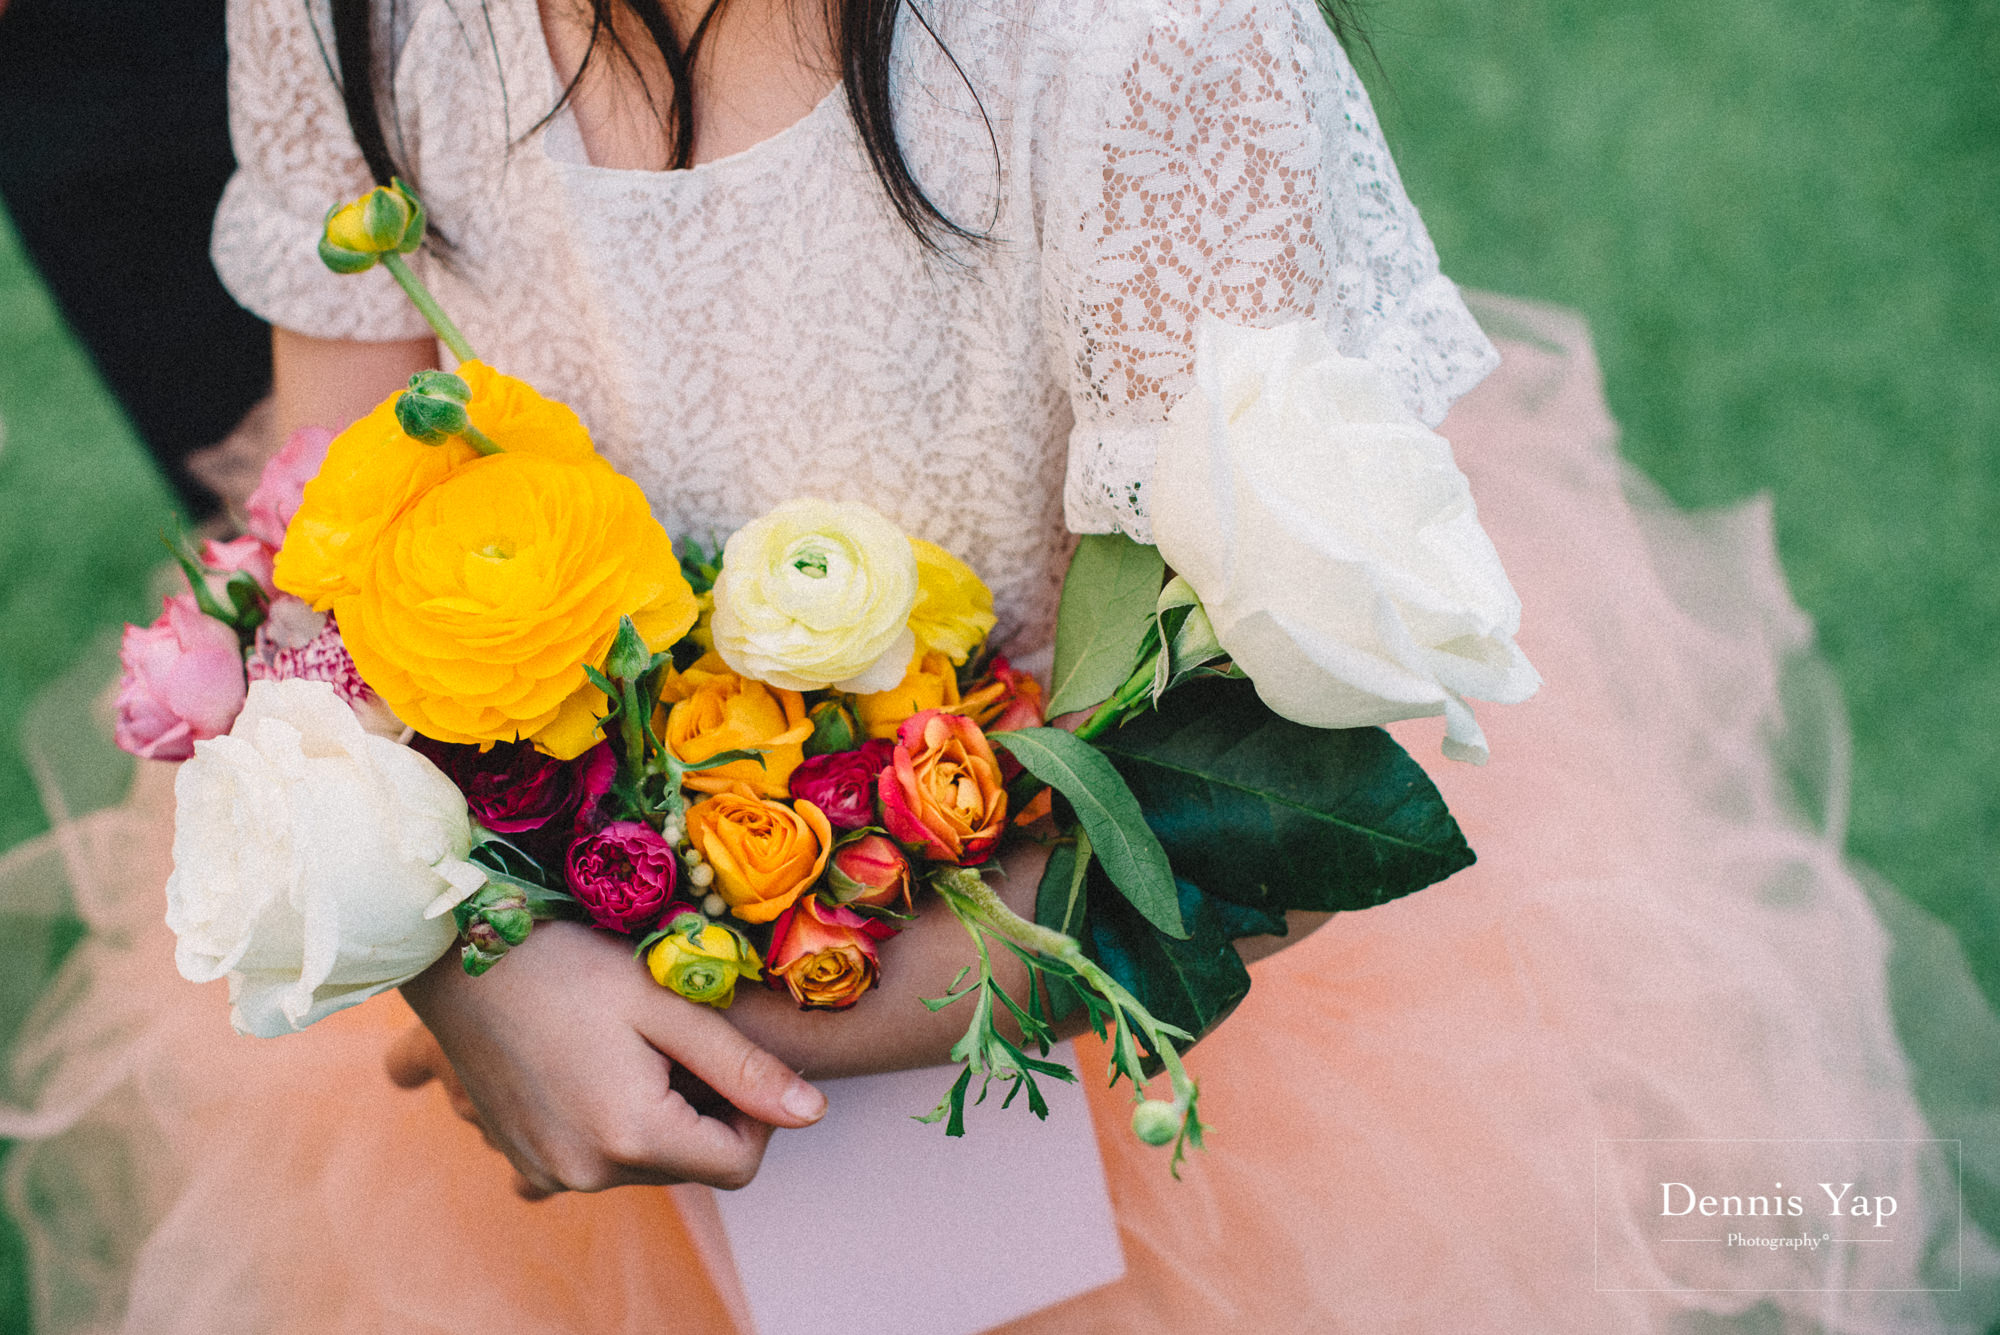 ethan janet perth wedding reception and garden ceremony in lamonts dennis yap photography-34.jpg